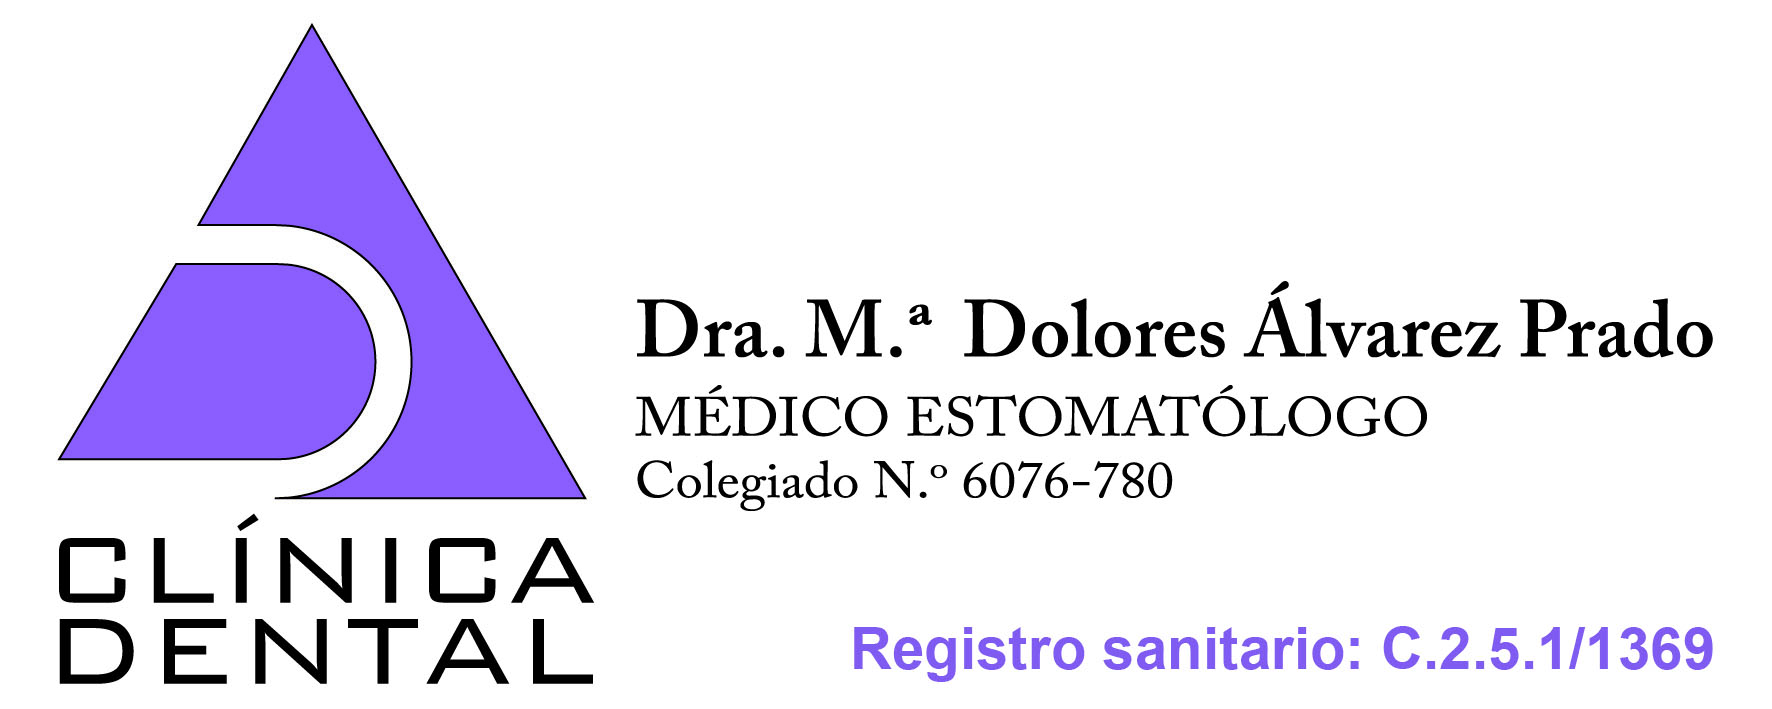 CLINICA DENTAL DOLORES ALVAREZ